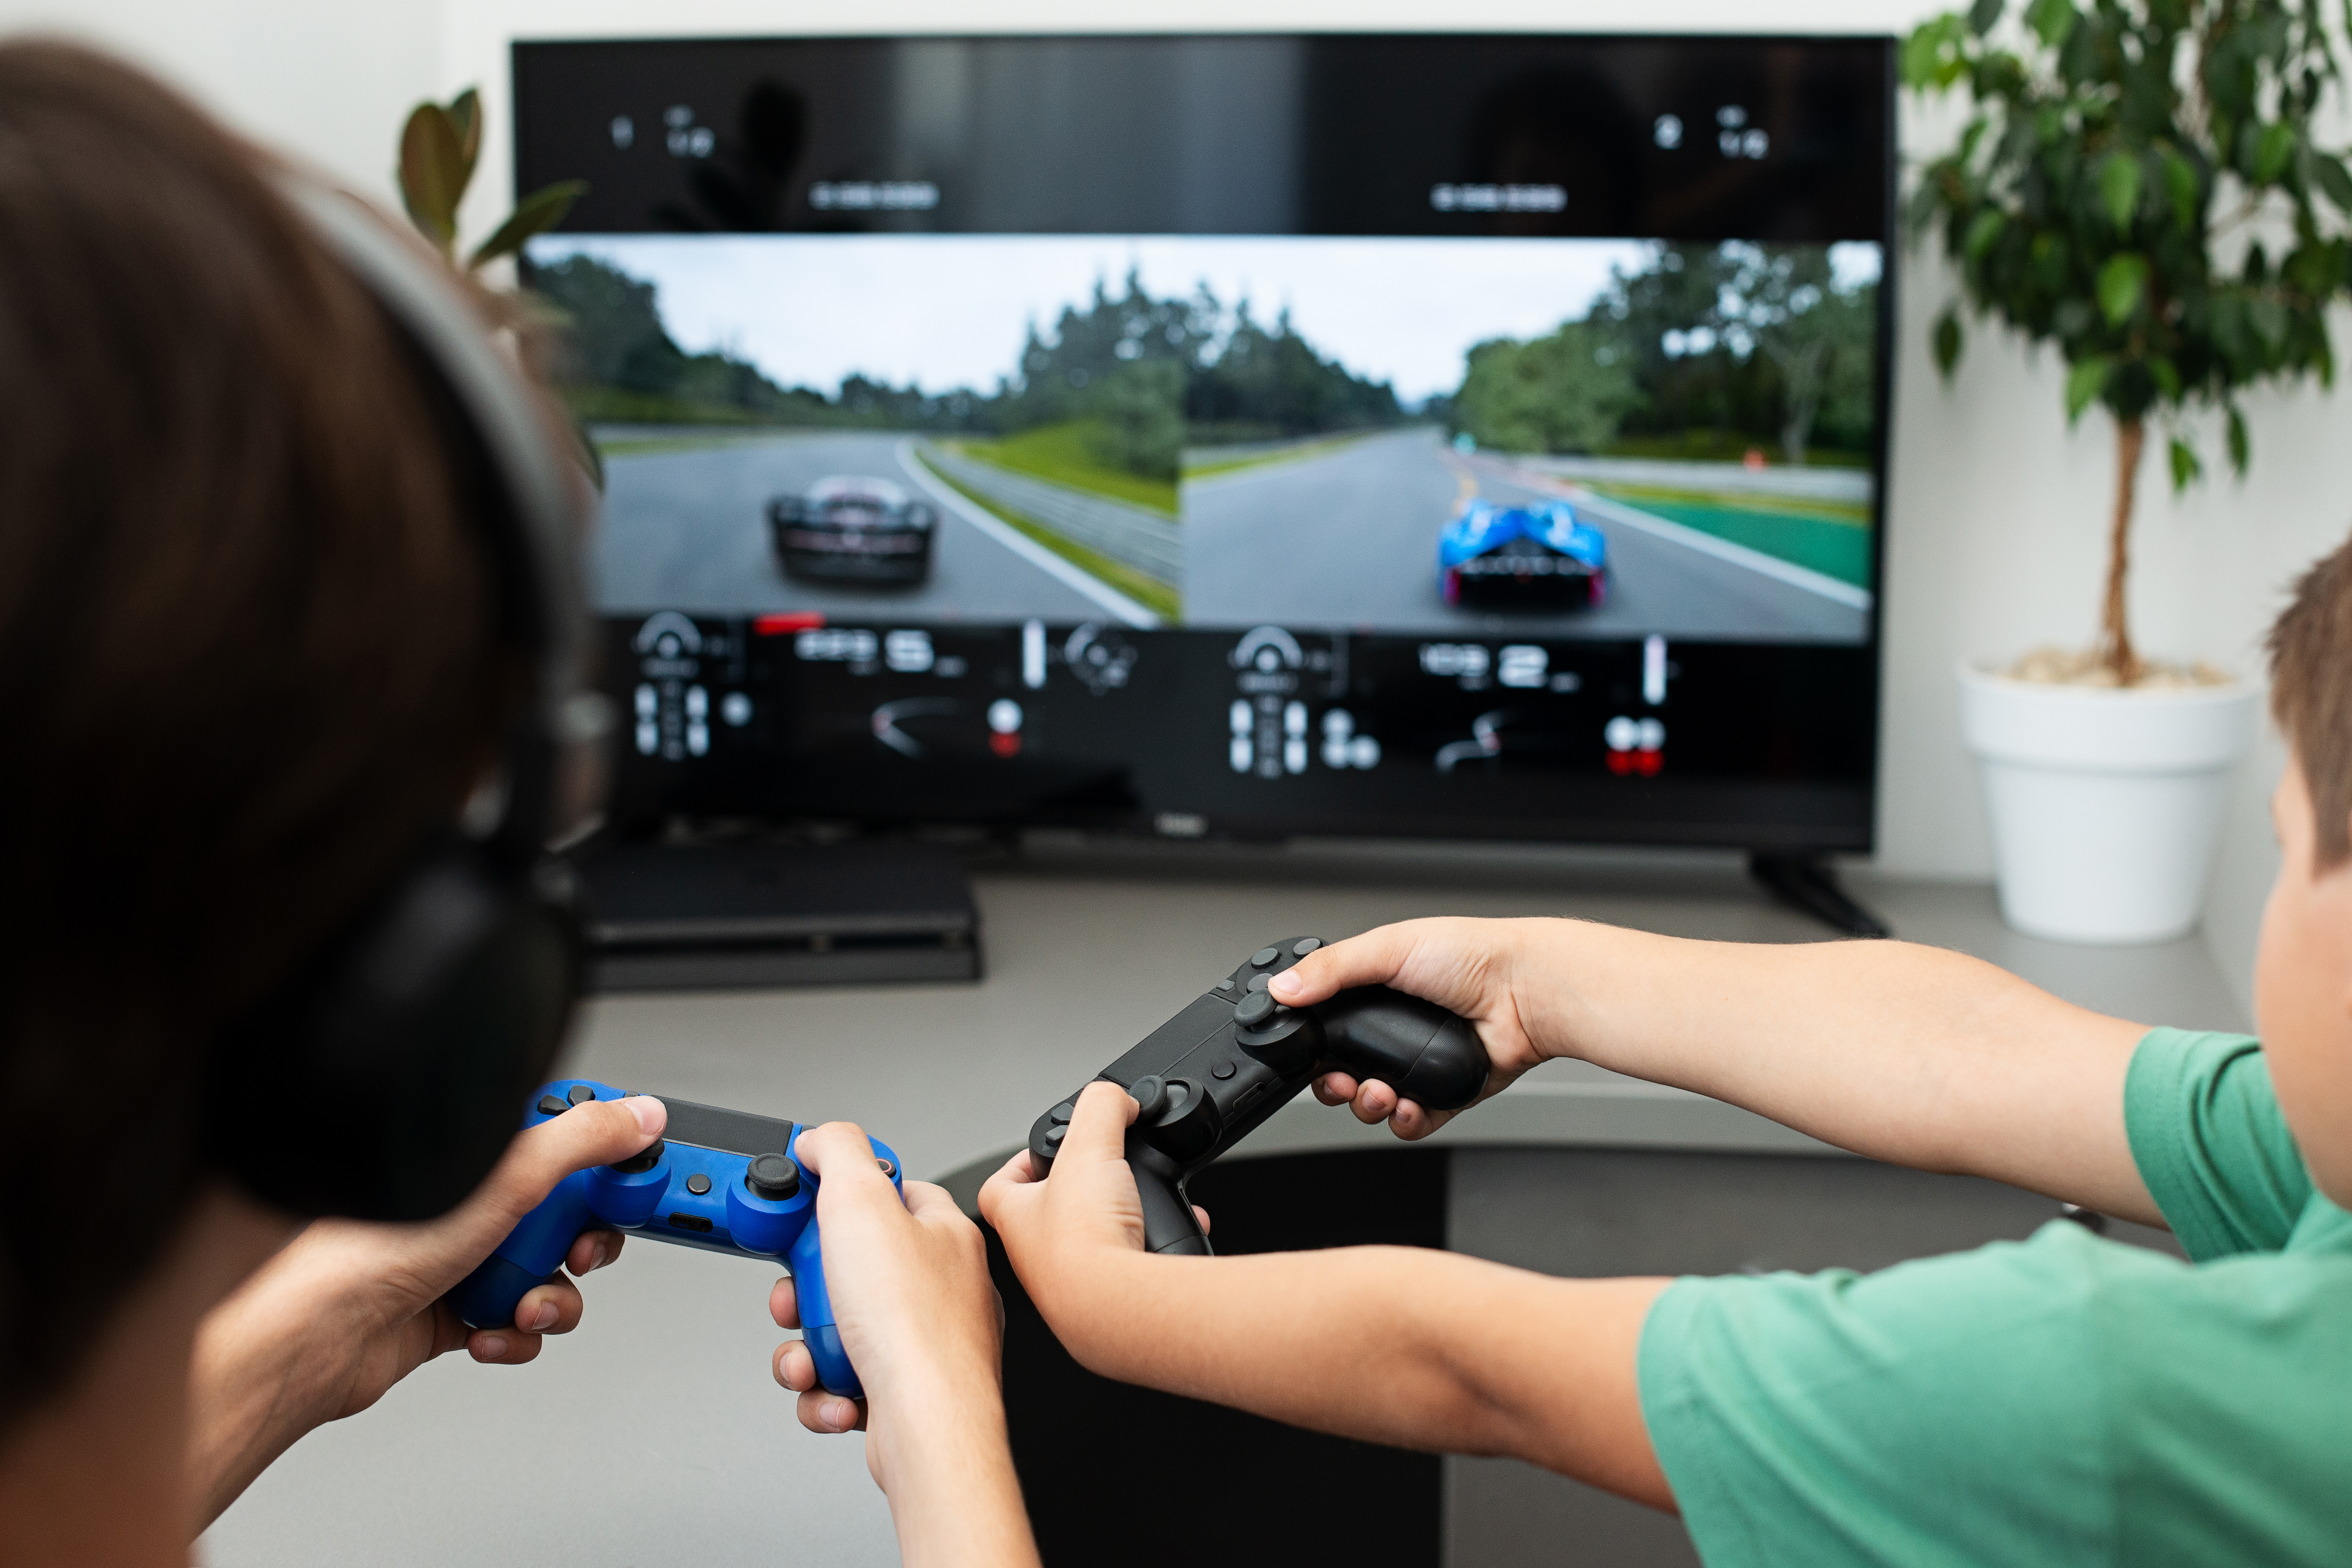 teenager-plays-computer-game-with-headphones-and-joystick